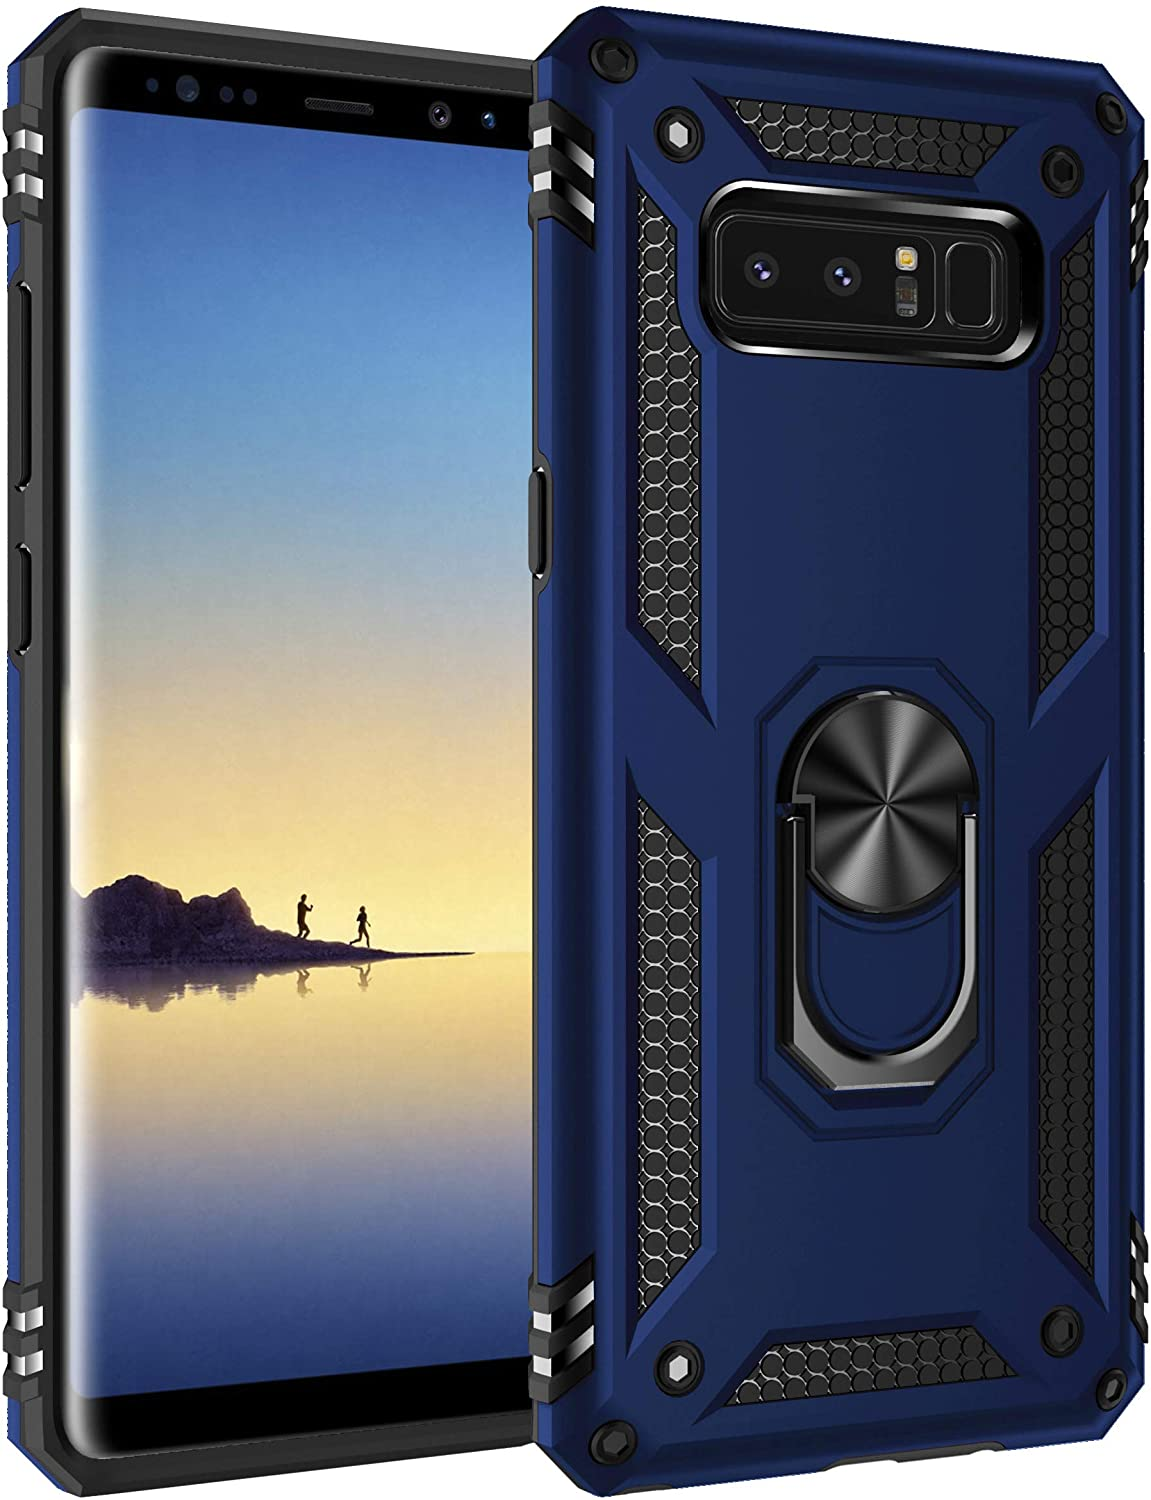 Konyaoo for Galaxy Note 8 Mobile Phone case, Shockproof,Anti-Fall Durable and Sturdy Non-Slip Double-Layer Plastic TPU Cover Ring, Suitable for Samsung Galaxy Note 8 6.3-inch Blue